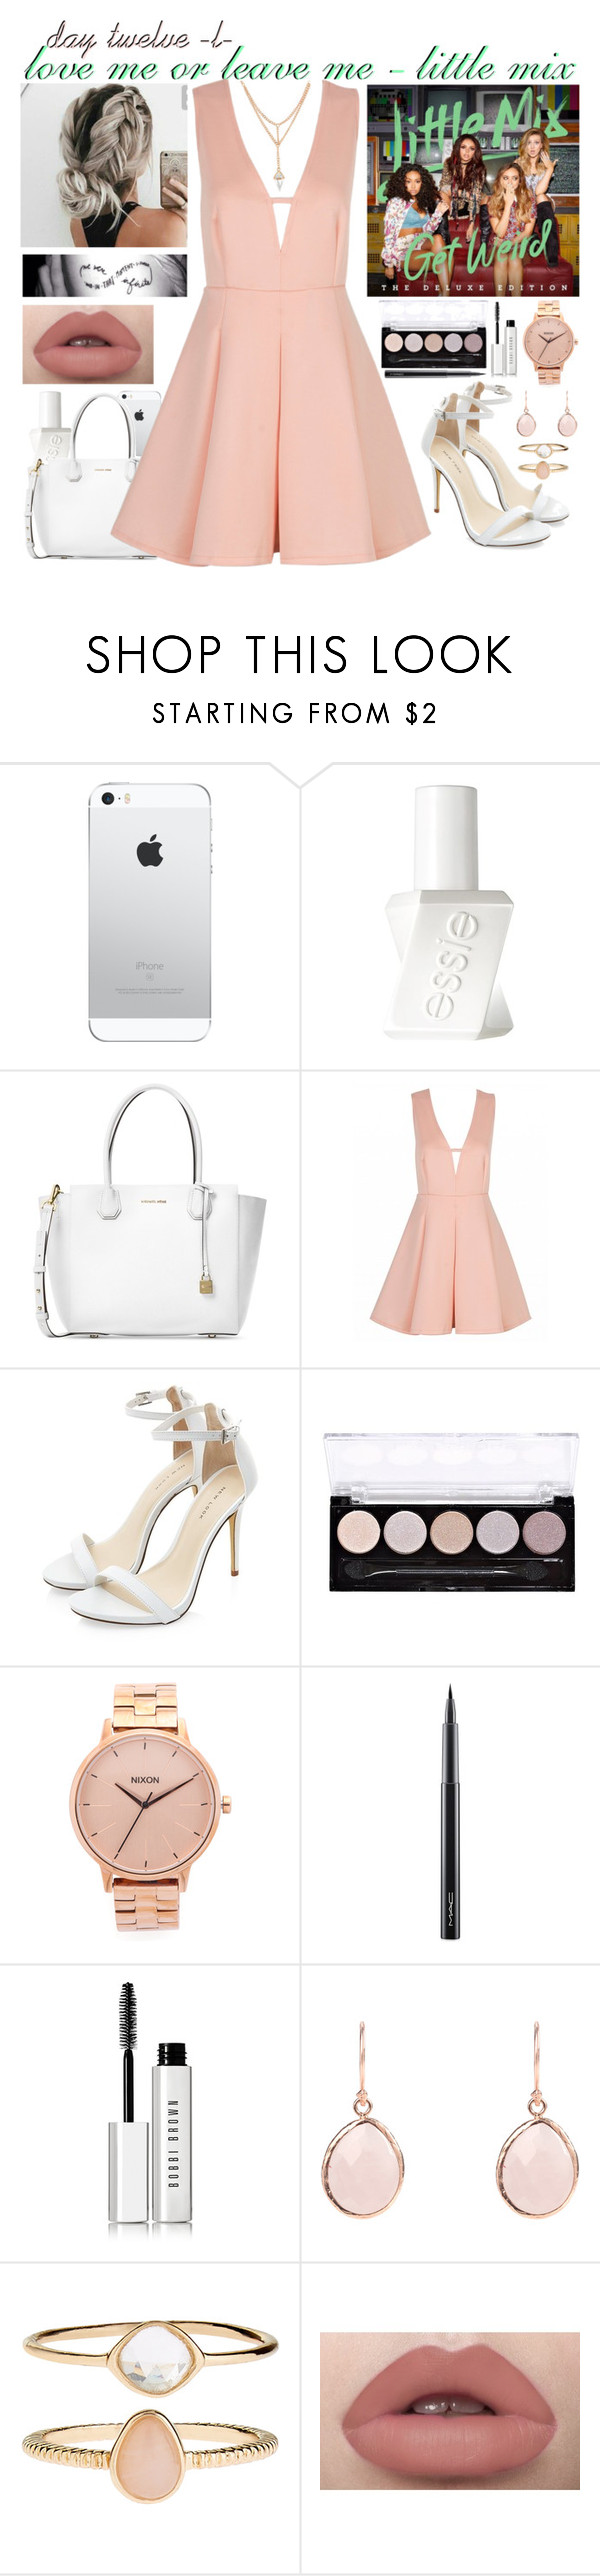 """""""day twelve, love me or leave me by little mix"""" by roxouu ❤ liked on Polyvore featuring Essie, Michael Kors, L.A. Colors, Nixon, MAC Cosmetics, Bobbi Brown Cosmetics, Accessorize, littlemix, music and byroxouu"""